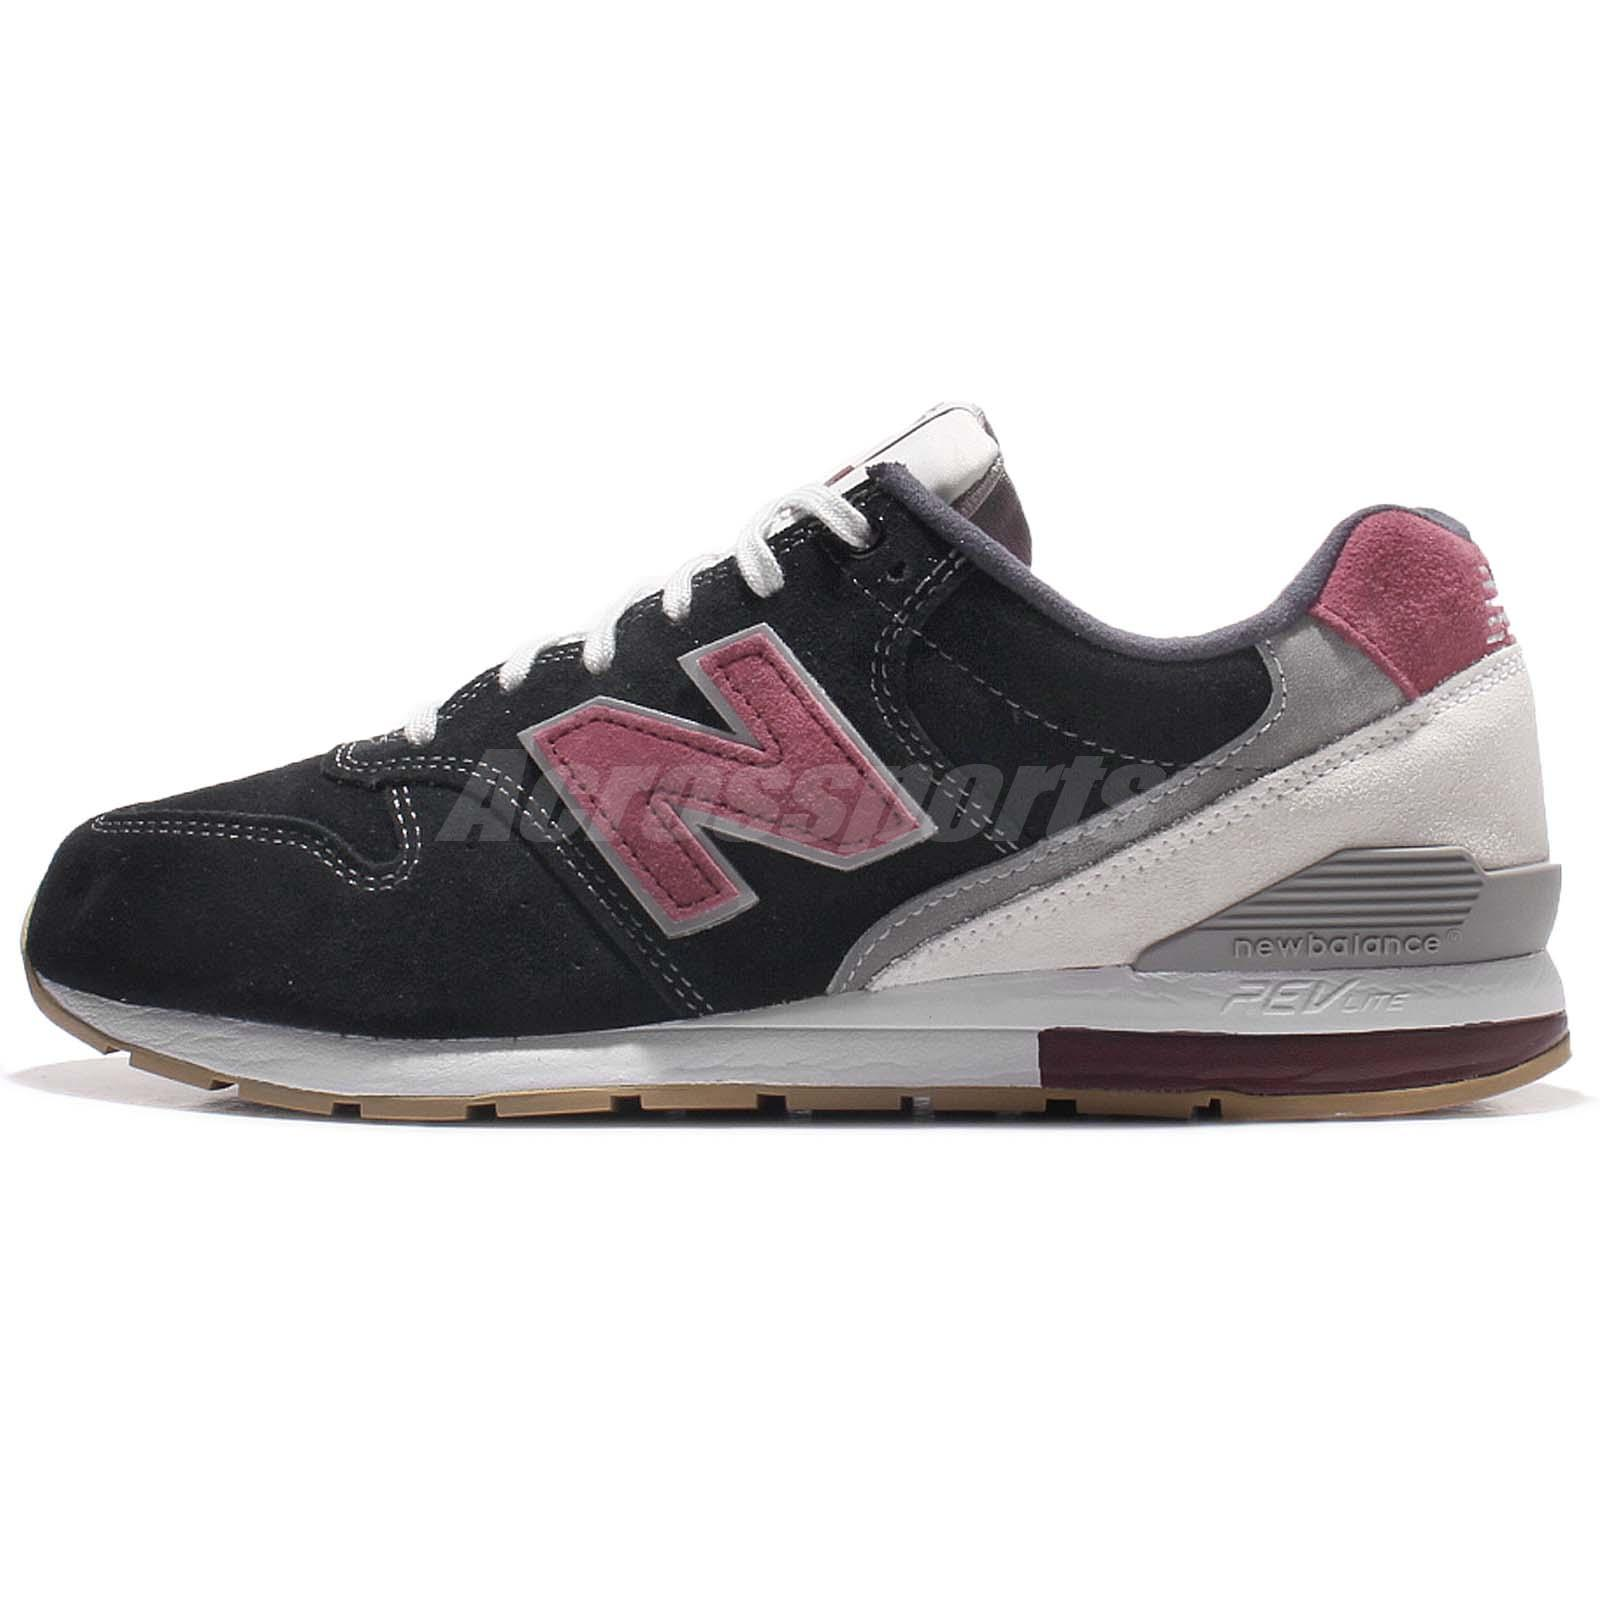 4ec8d8ef27327 Cheap new balance suede shoes Buy Online >OFF43% Discounted